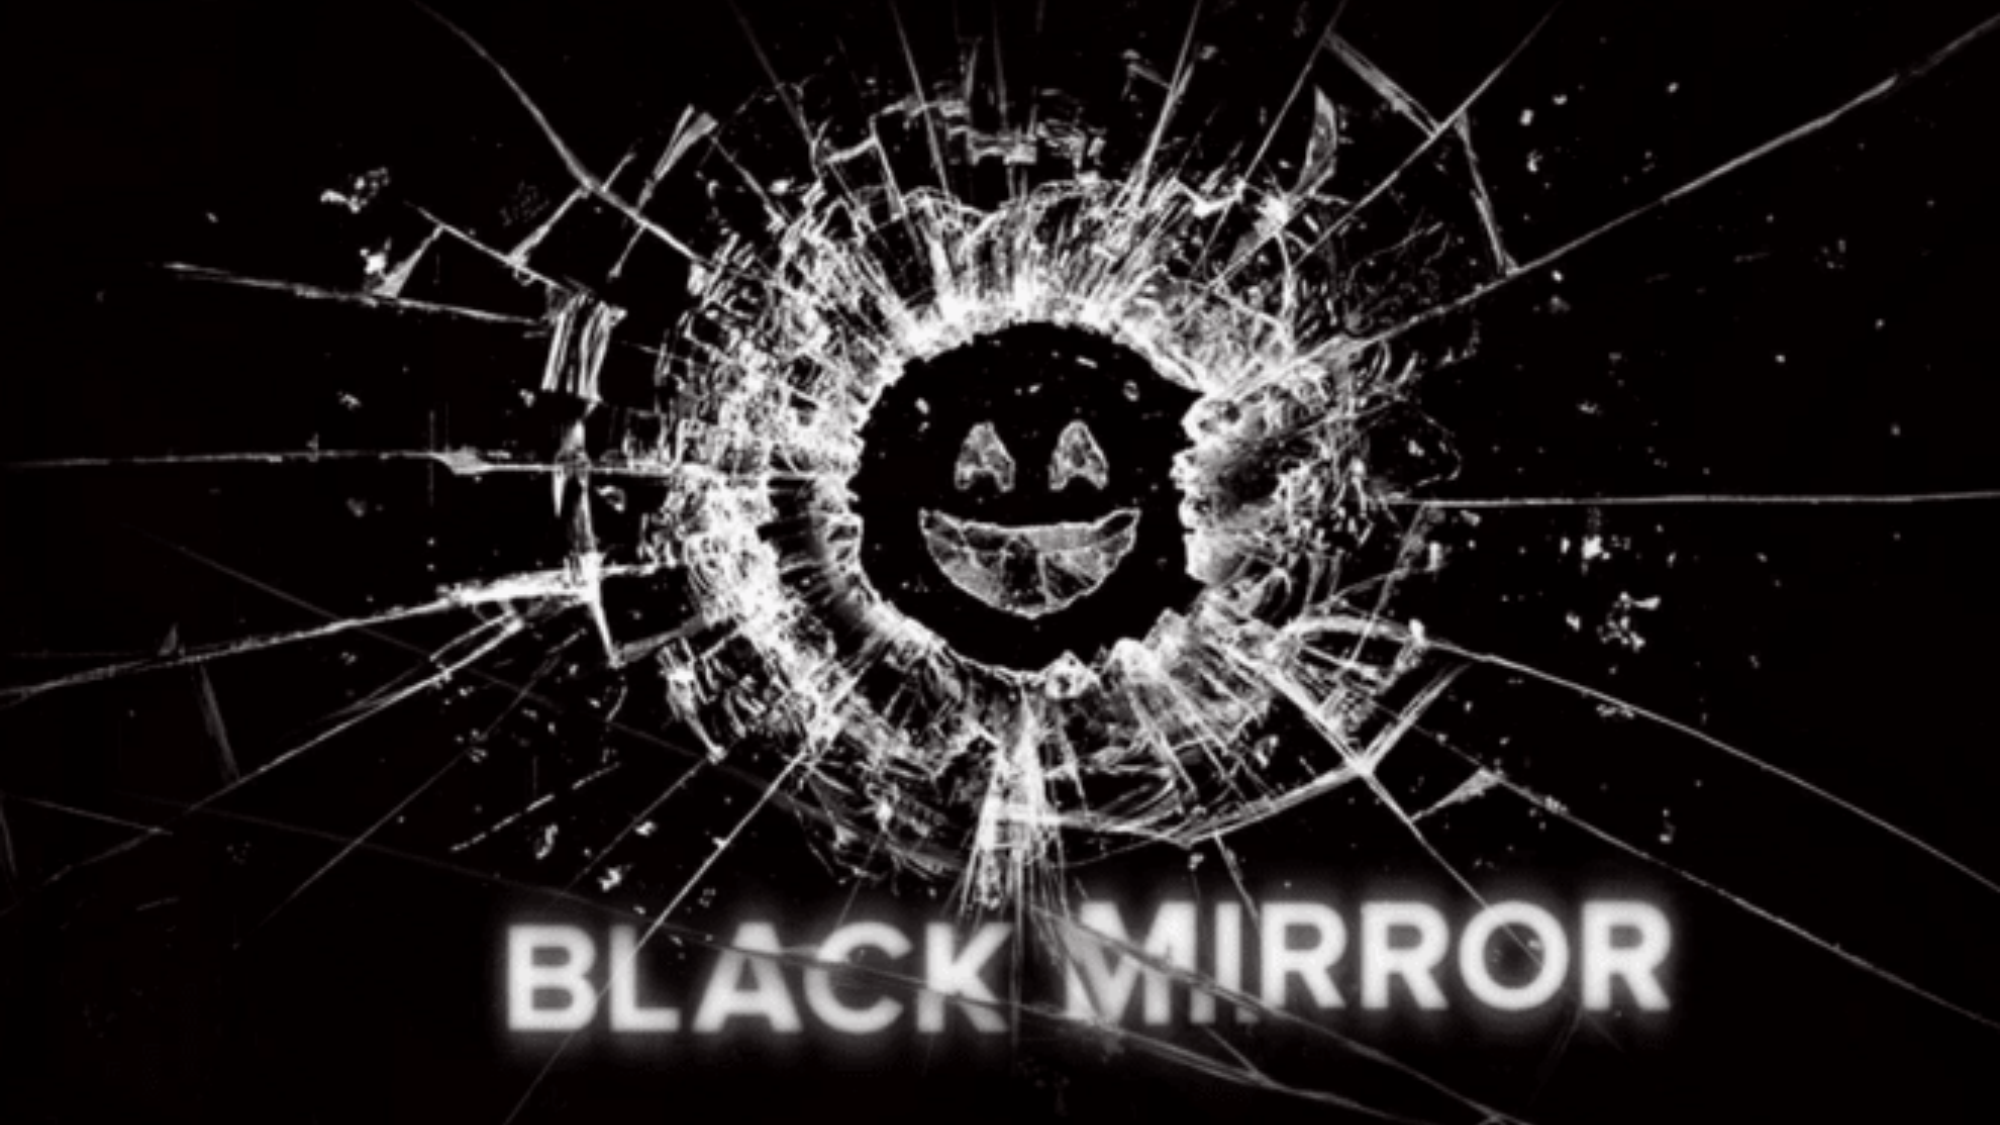 Black Mirror season 5 release date number of episodes